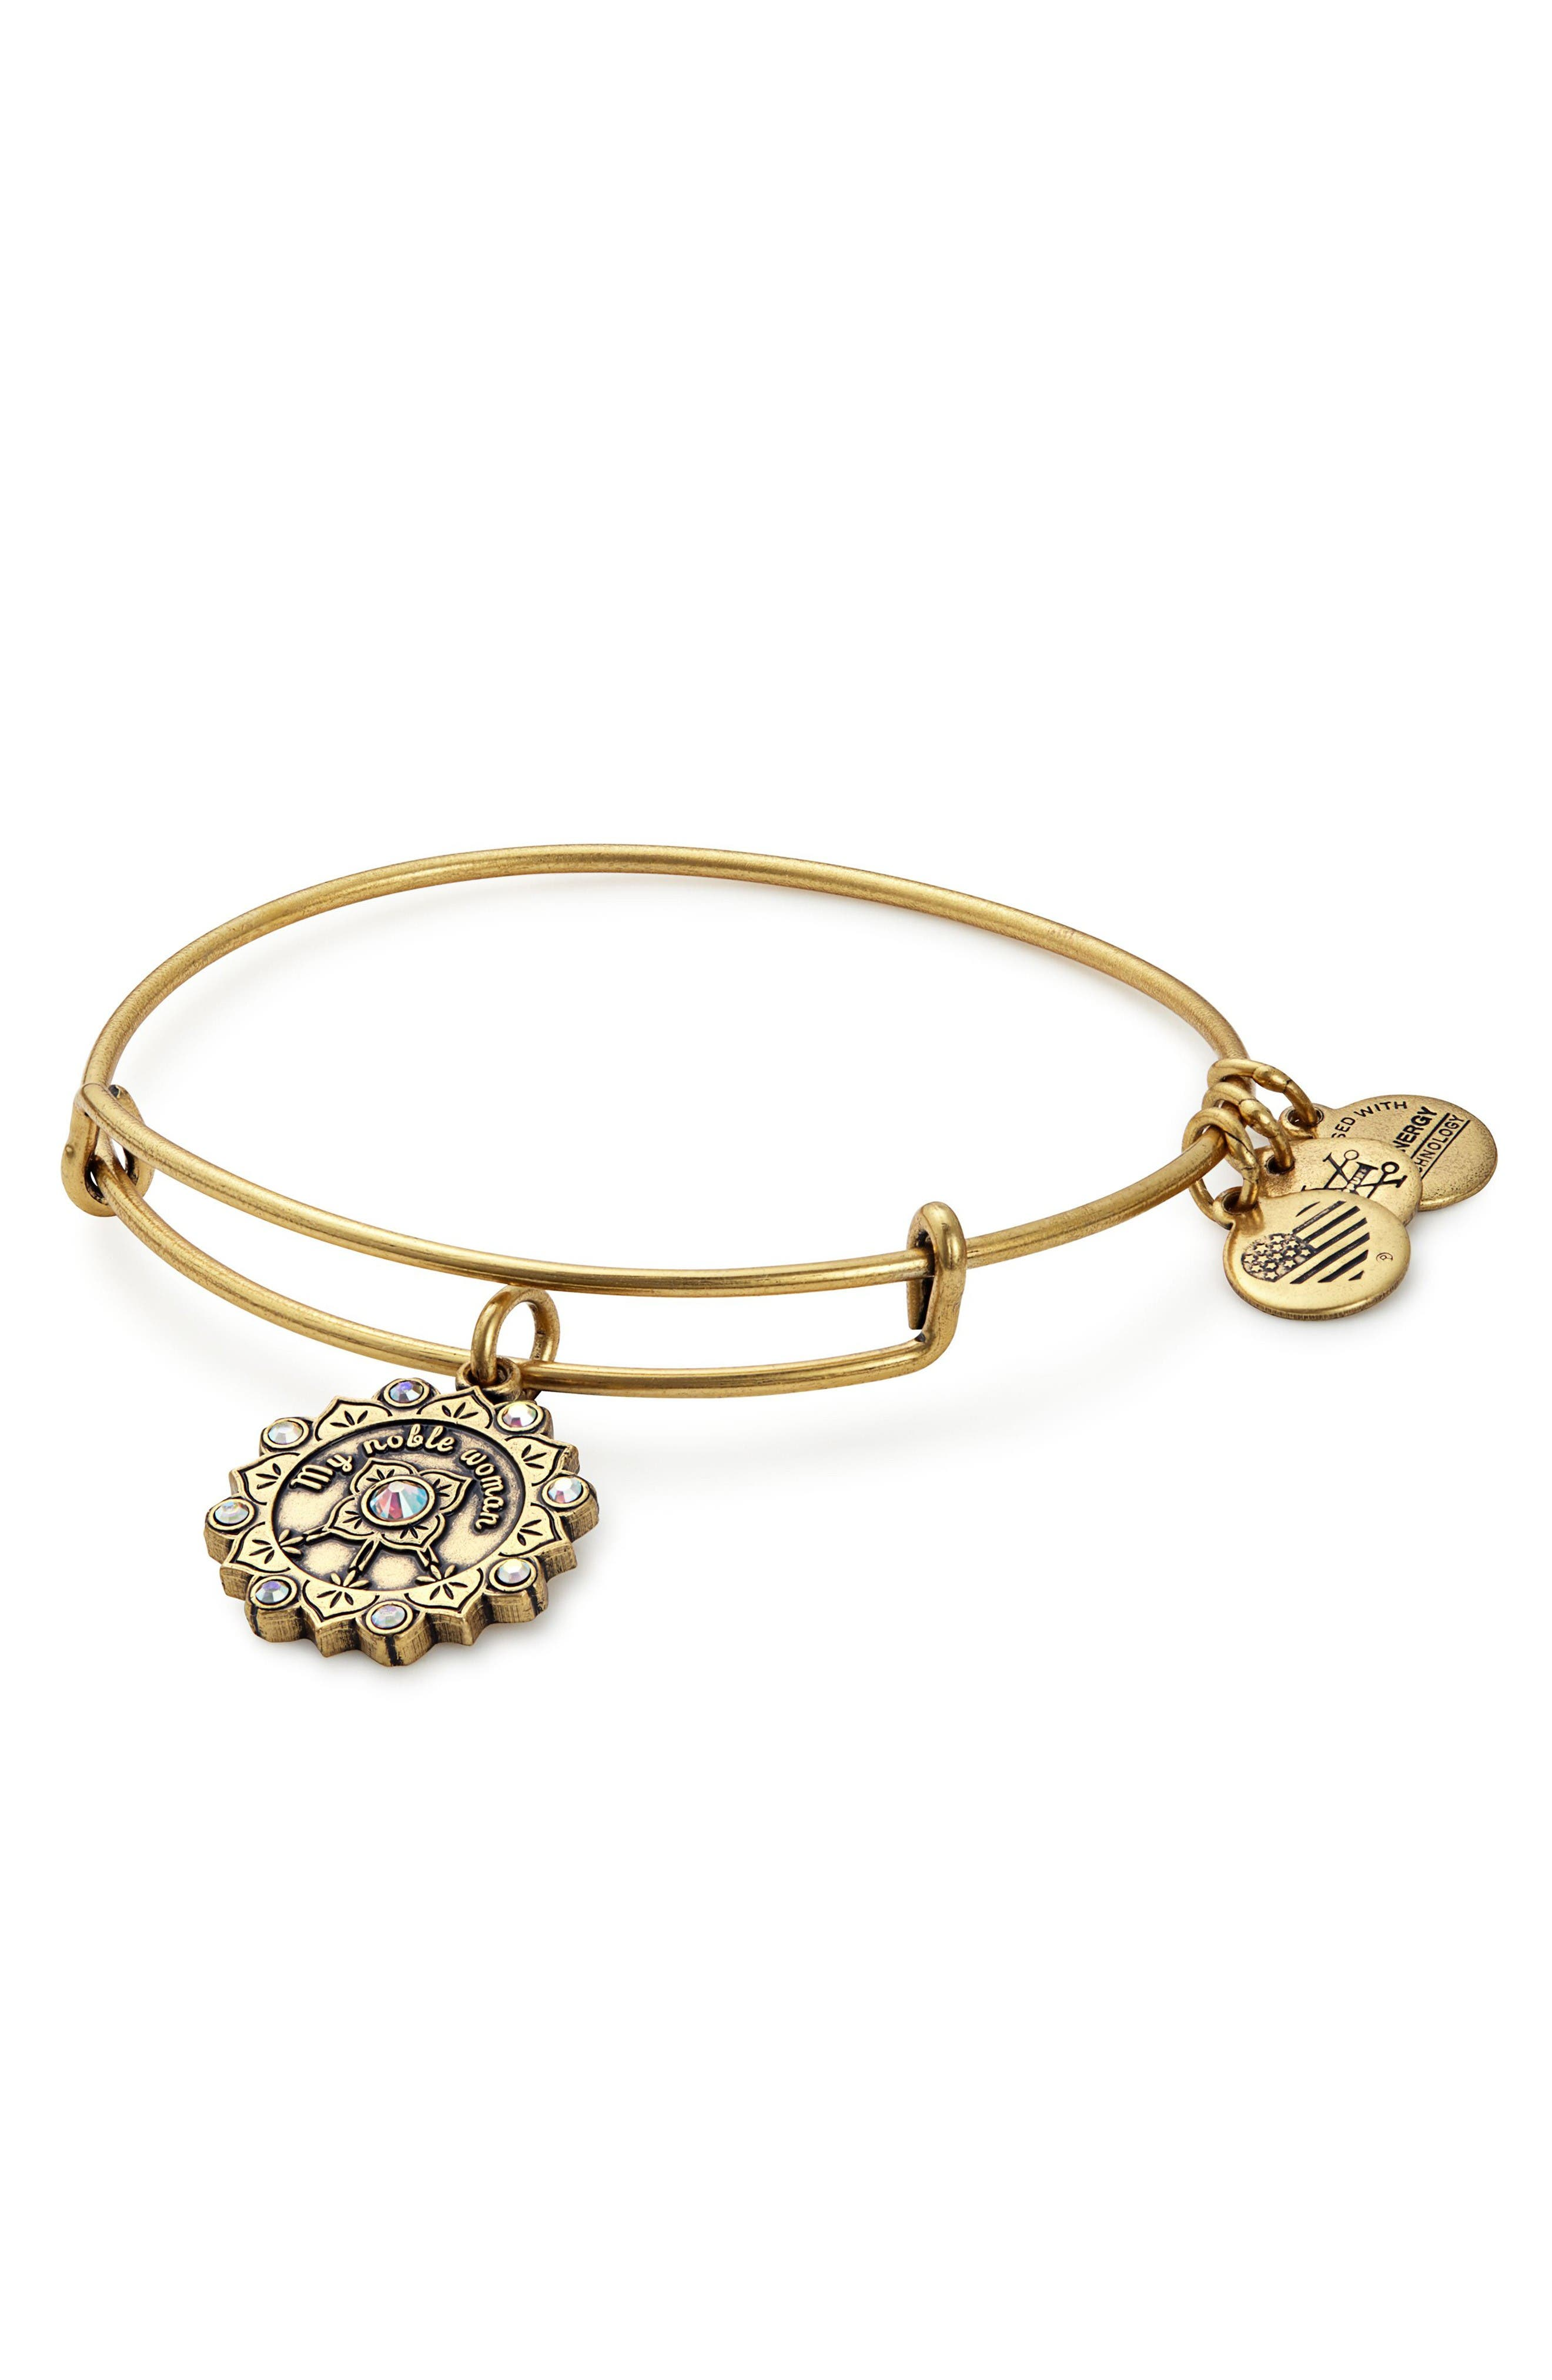 Alternate Image 1 Selected - Alex and Ani Maid of Honor Adjustable Wire Bangle